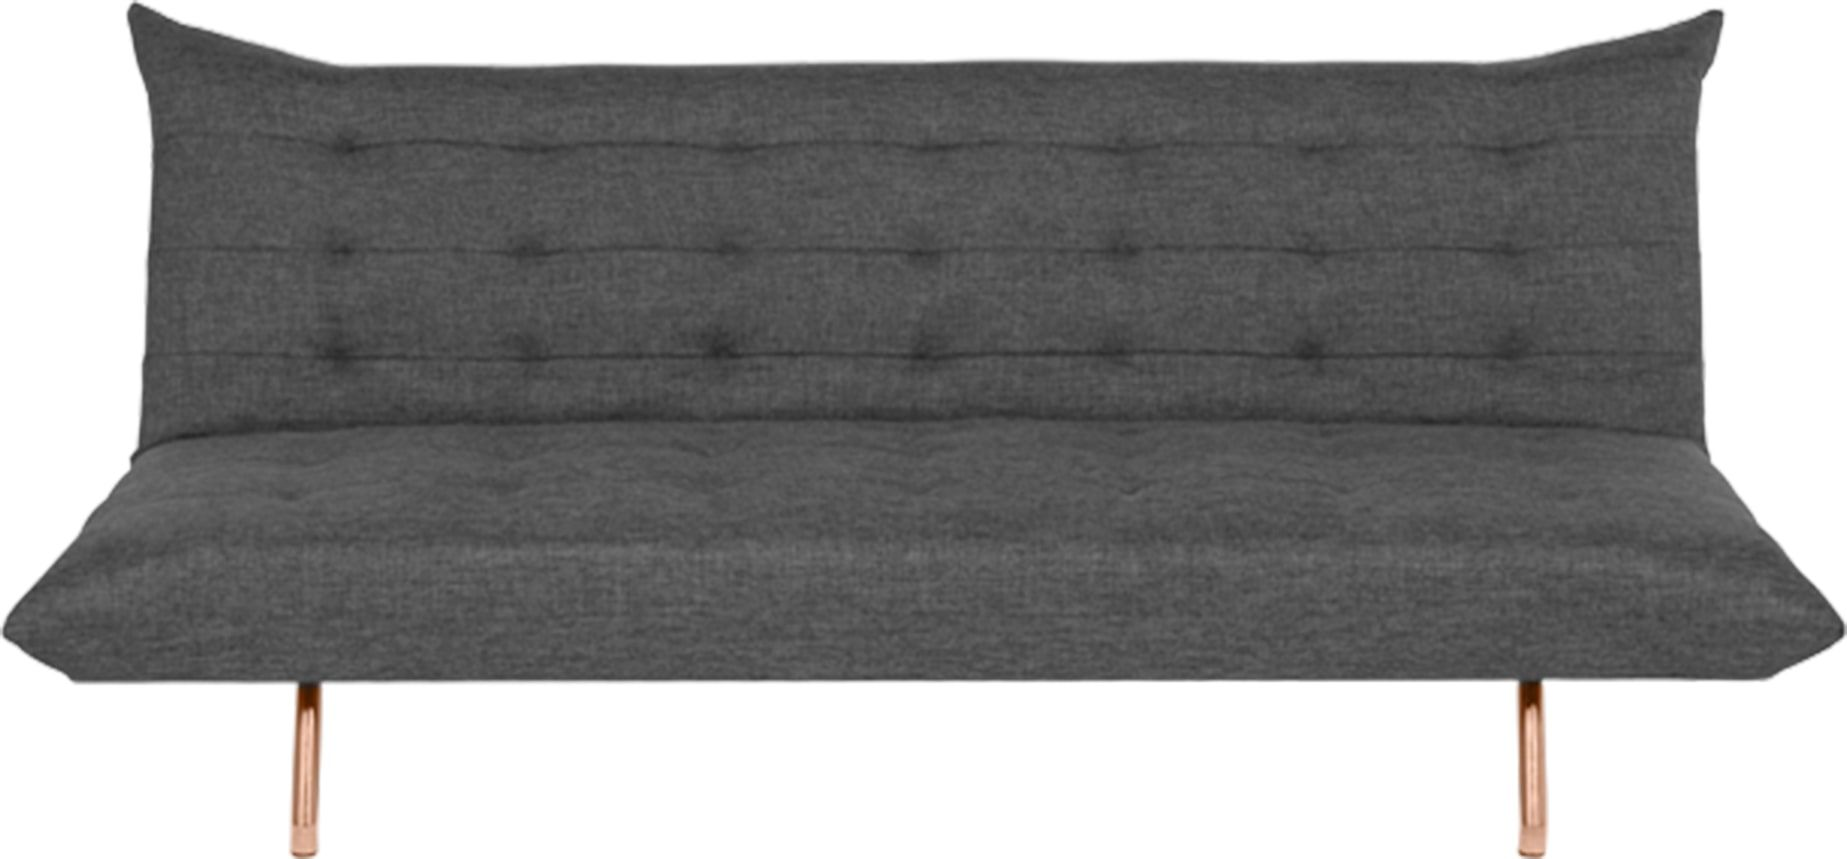 Clearance Sofa Beds For Sale Top Rated Brands Made Bed Cygnet Grey Copper Legs Now On Keiko From Com New Our Favourite